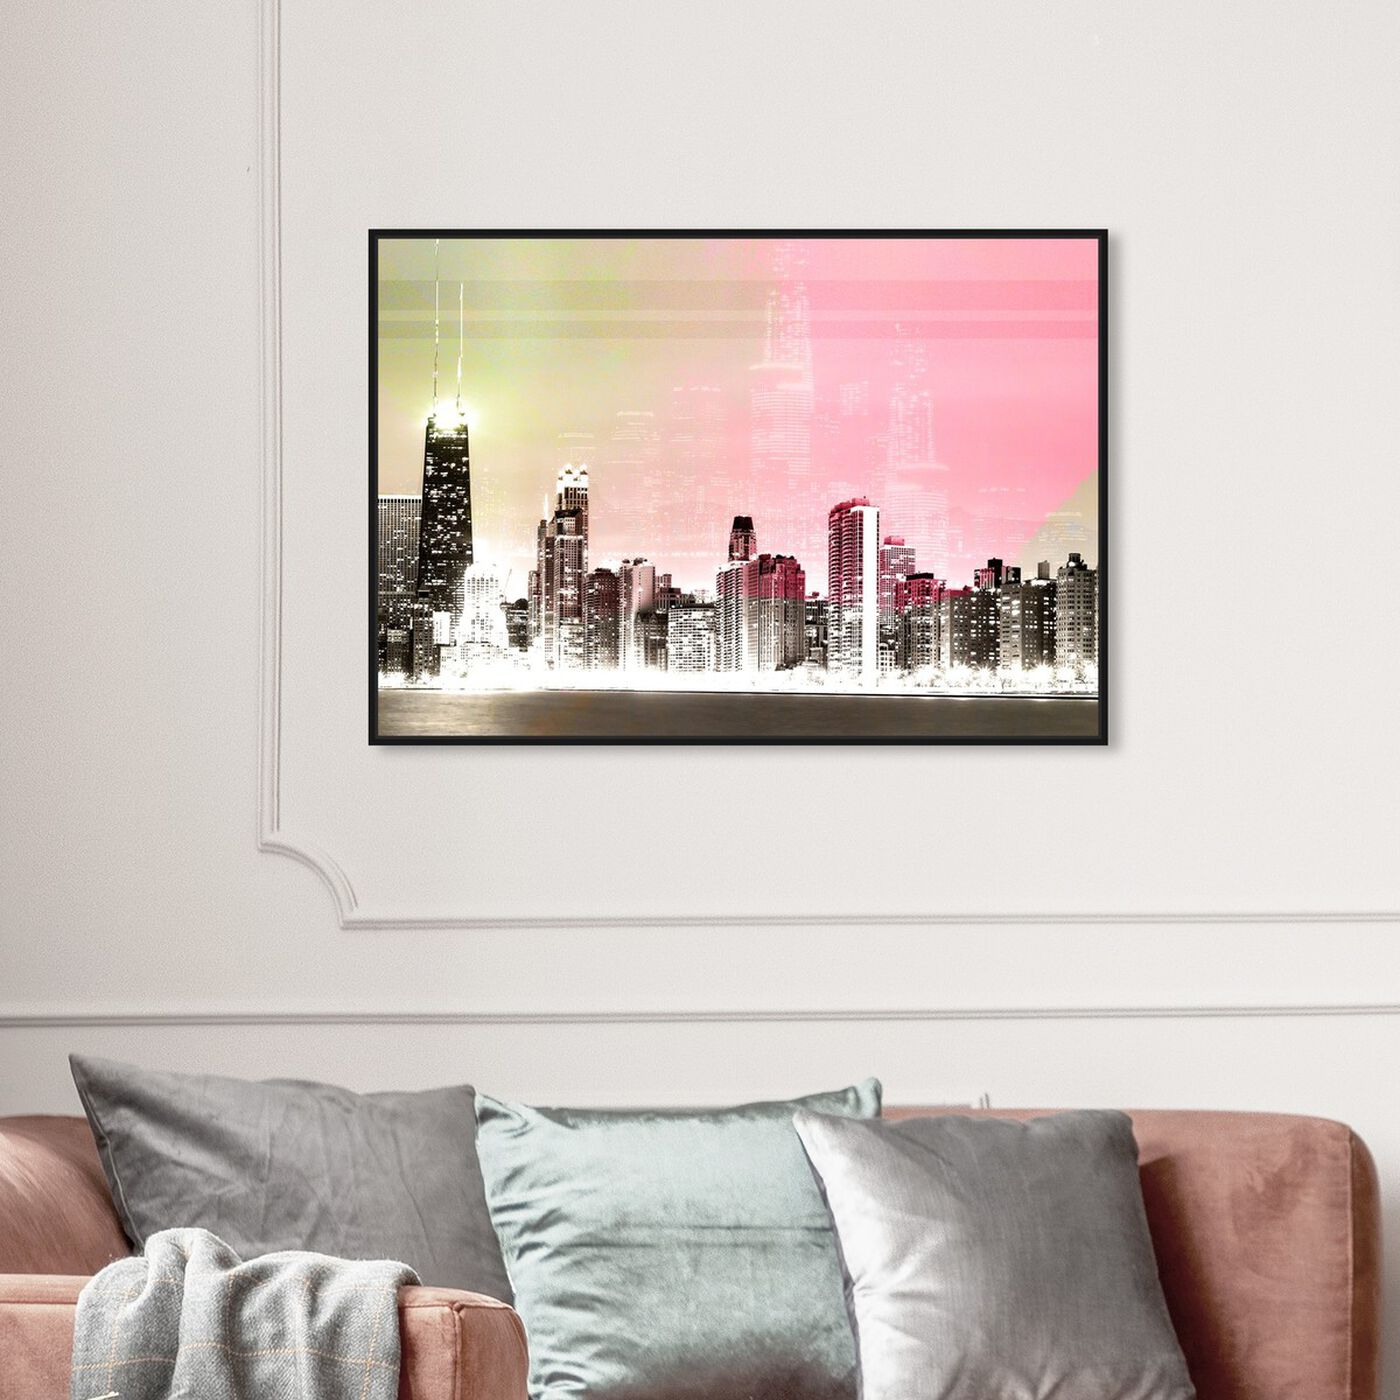 Hanging view of Bright Lights featuring cities and skylines and world cities art.